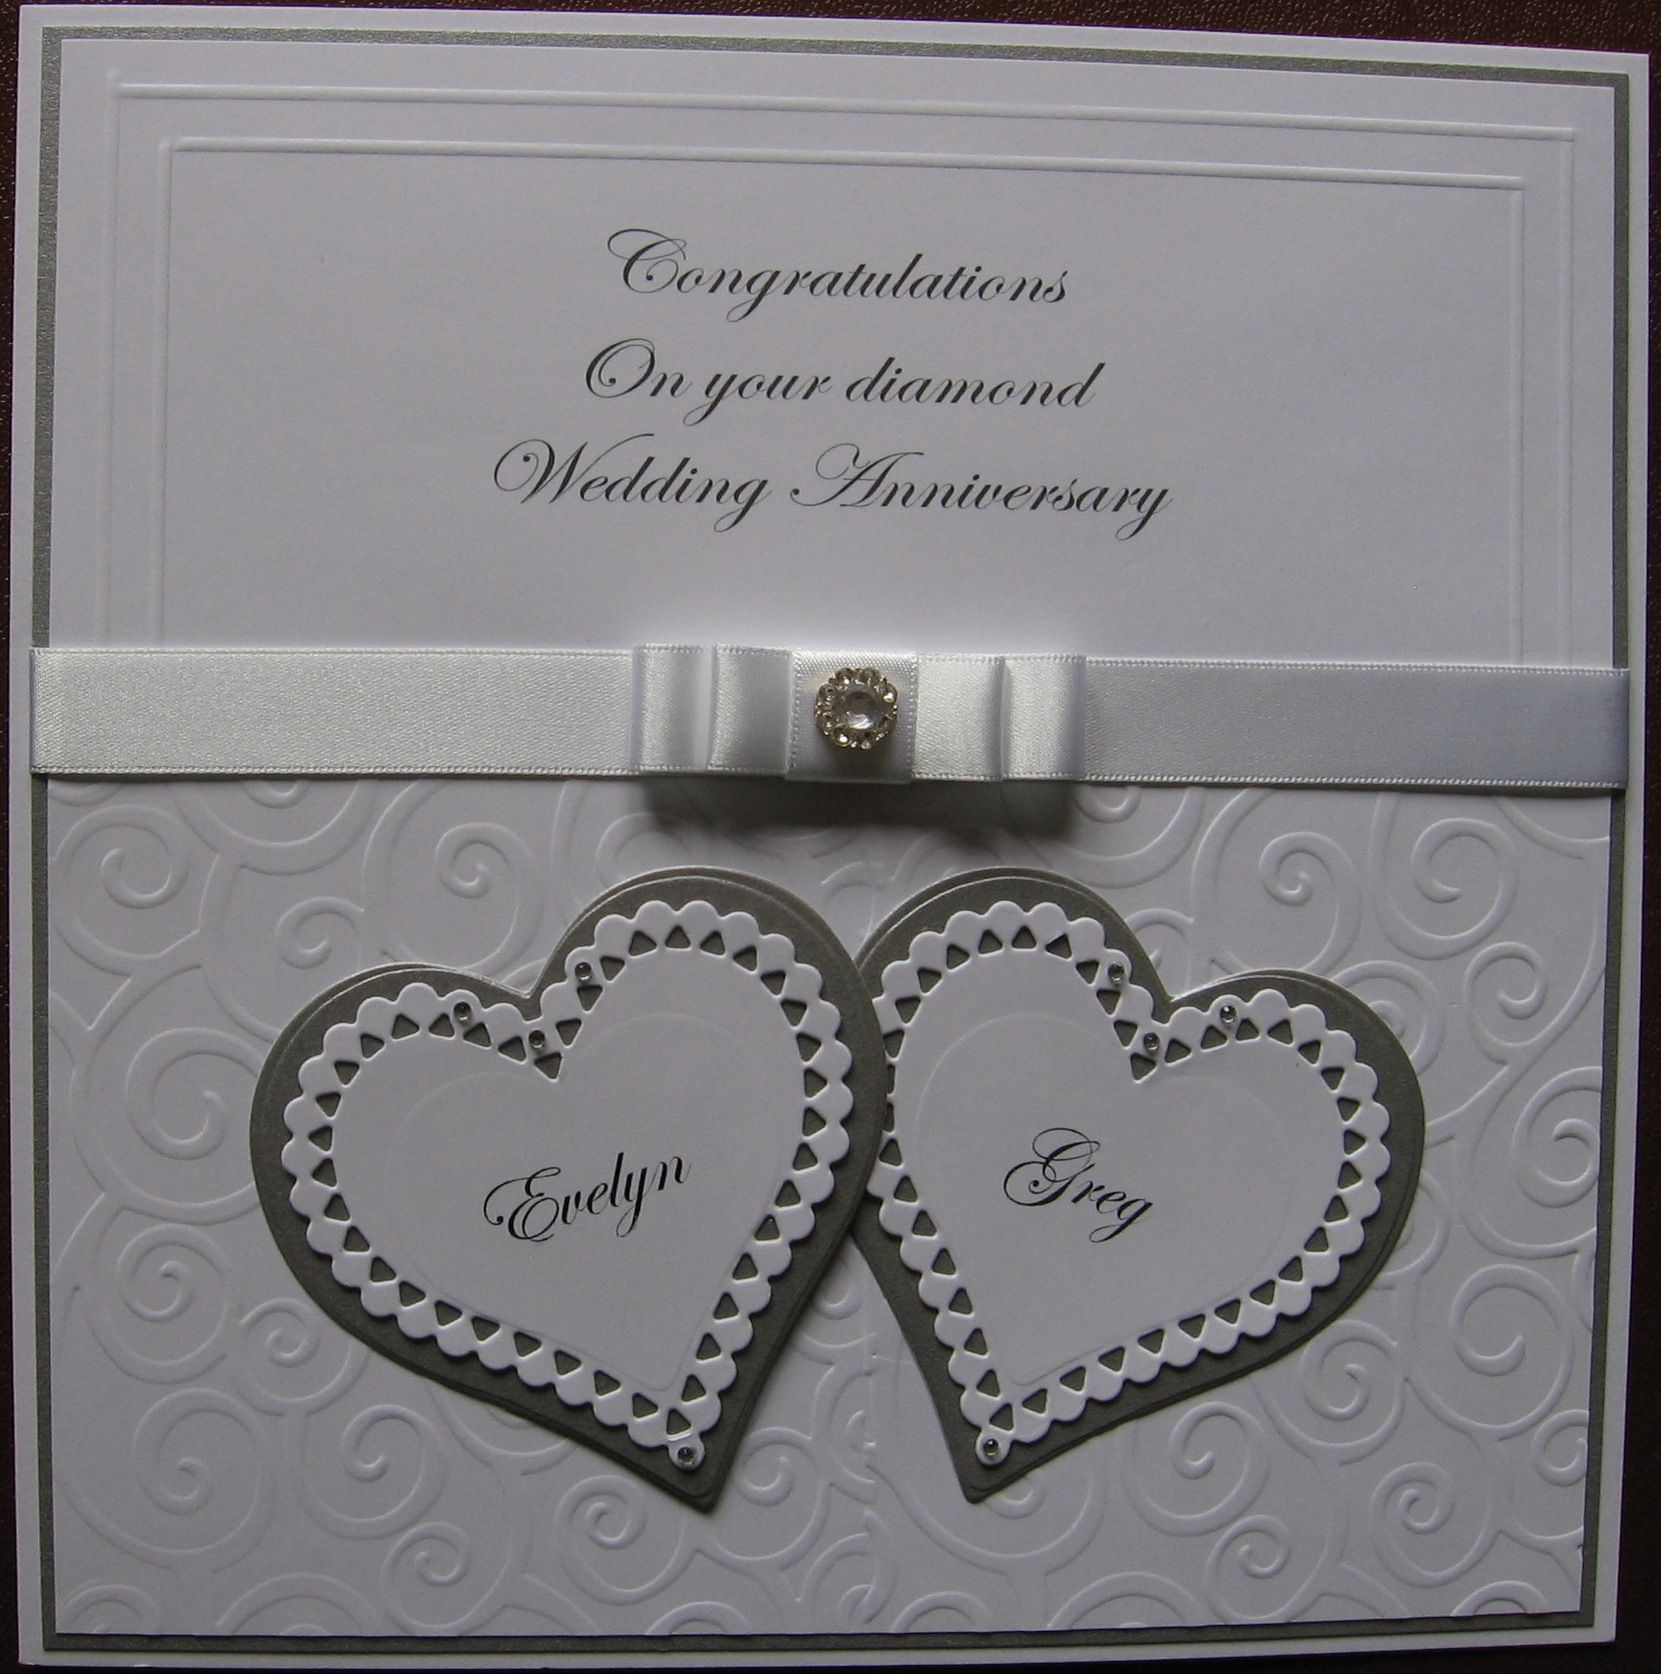 Attractive 60th Wedding Anniversary Card Making Ideas Part - 2: Card Made For A Friend On Her Diamond Wedding Anniversary